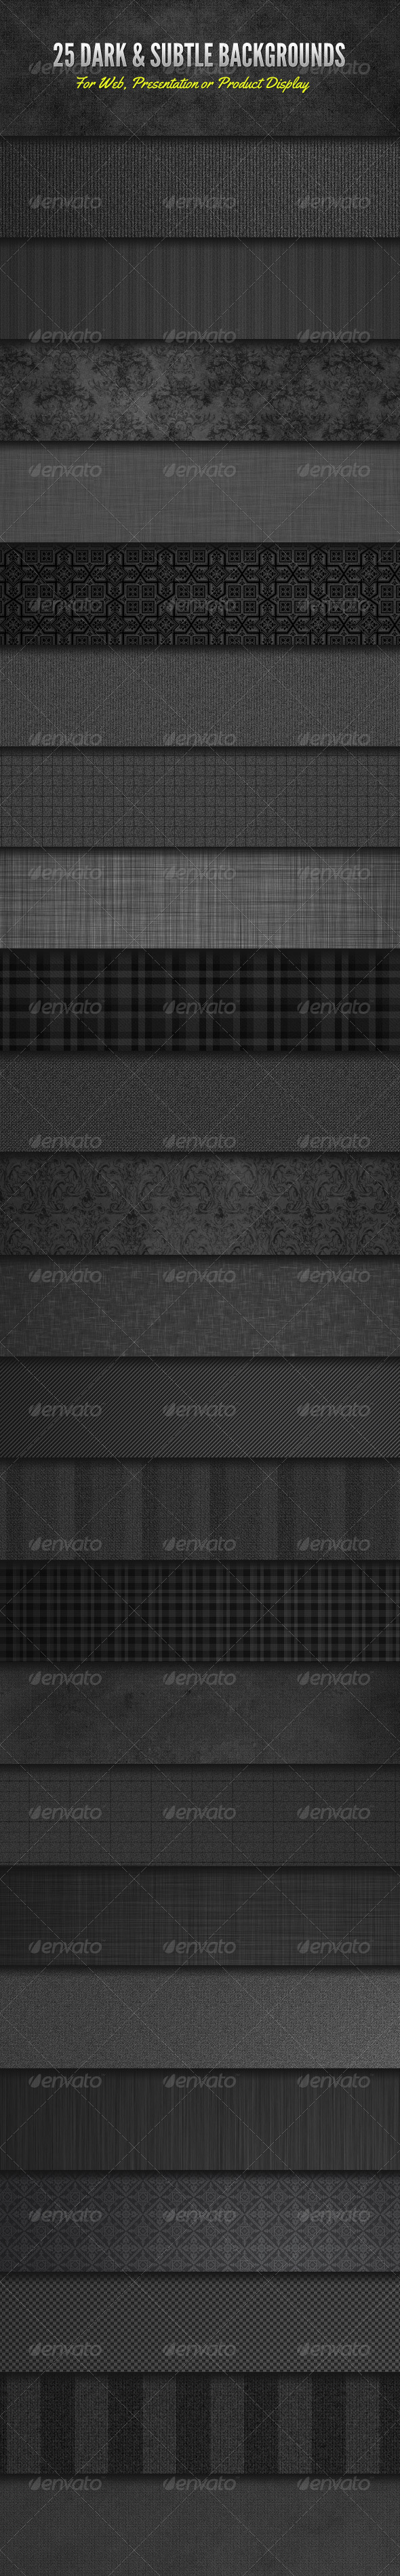 Dark and Subtle Background Textures - Miscellaneous Backgrounds